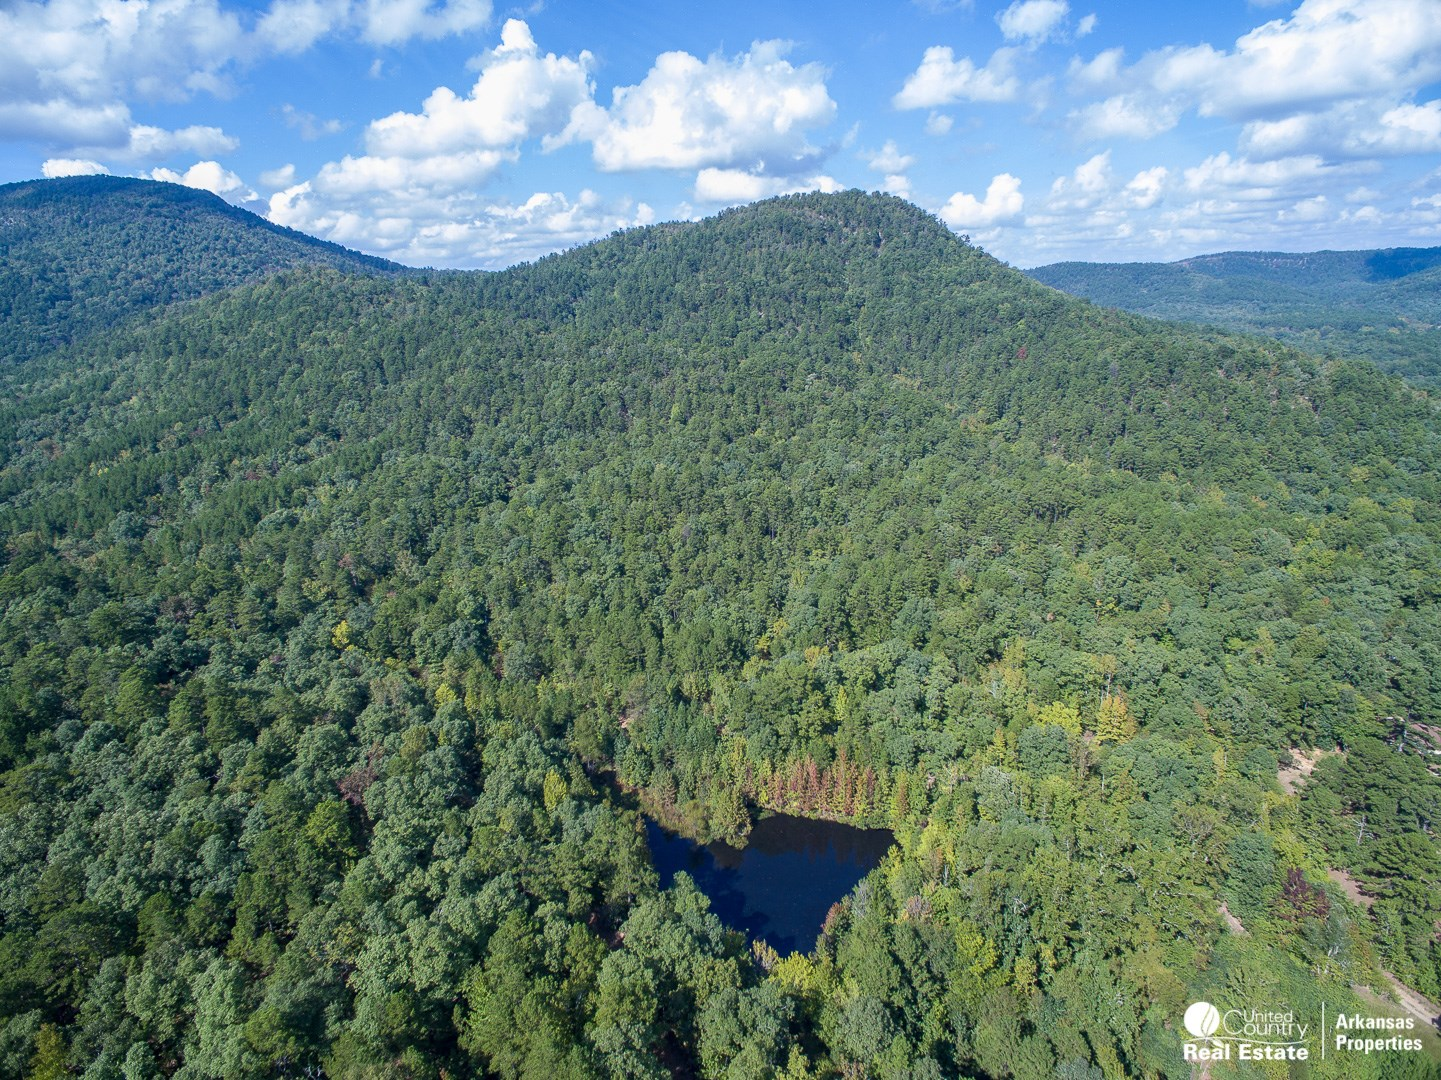 WATERFRONT LAND FOR SALE WITH MOUNTAIN VIEWS IN ARKANSAS